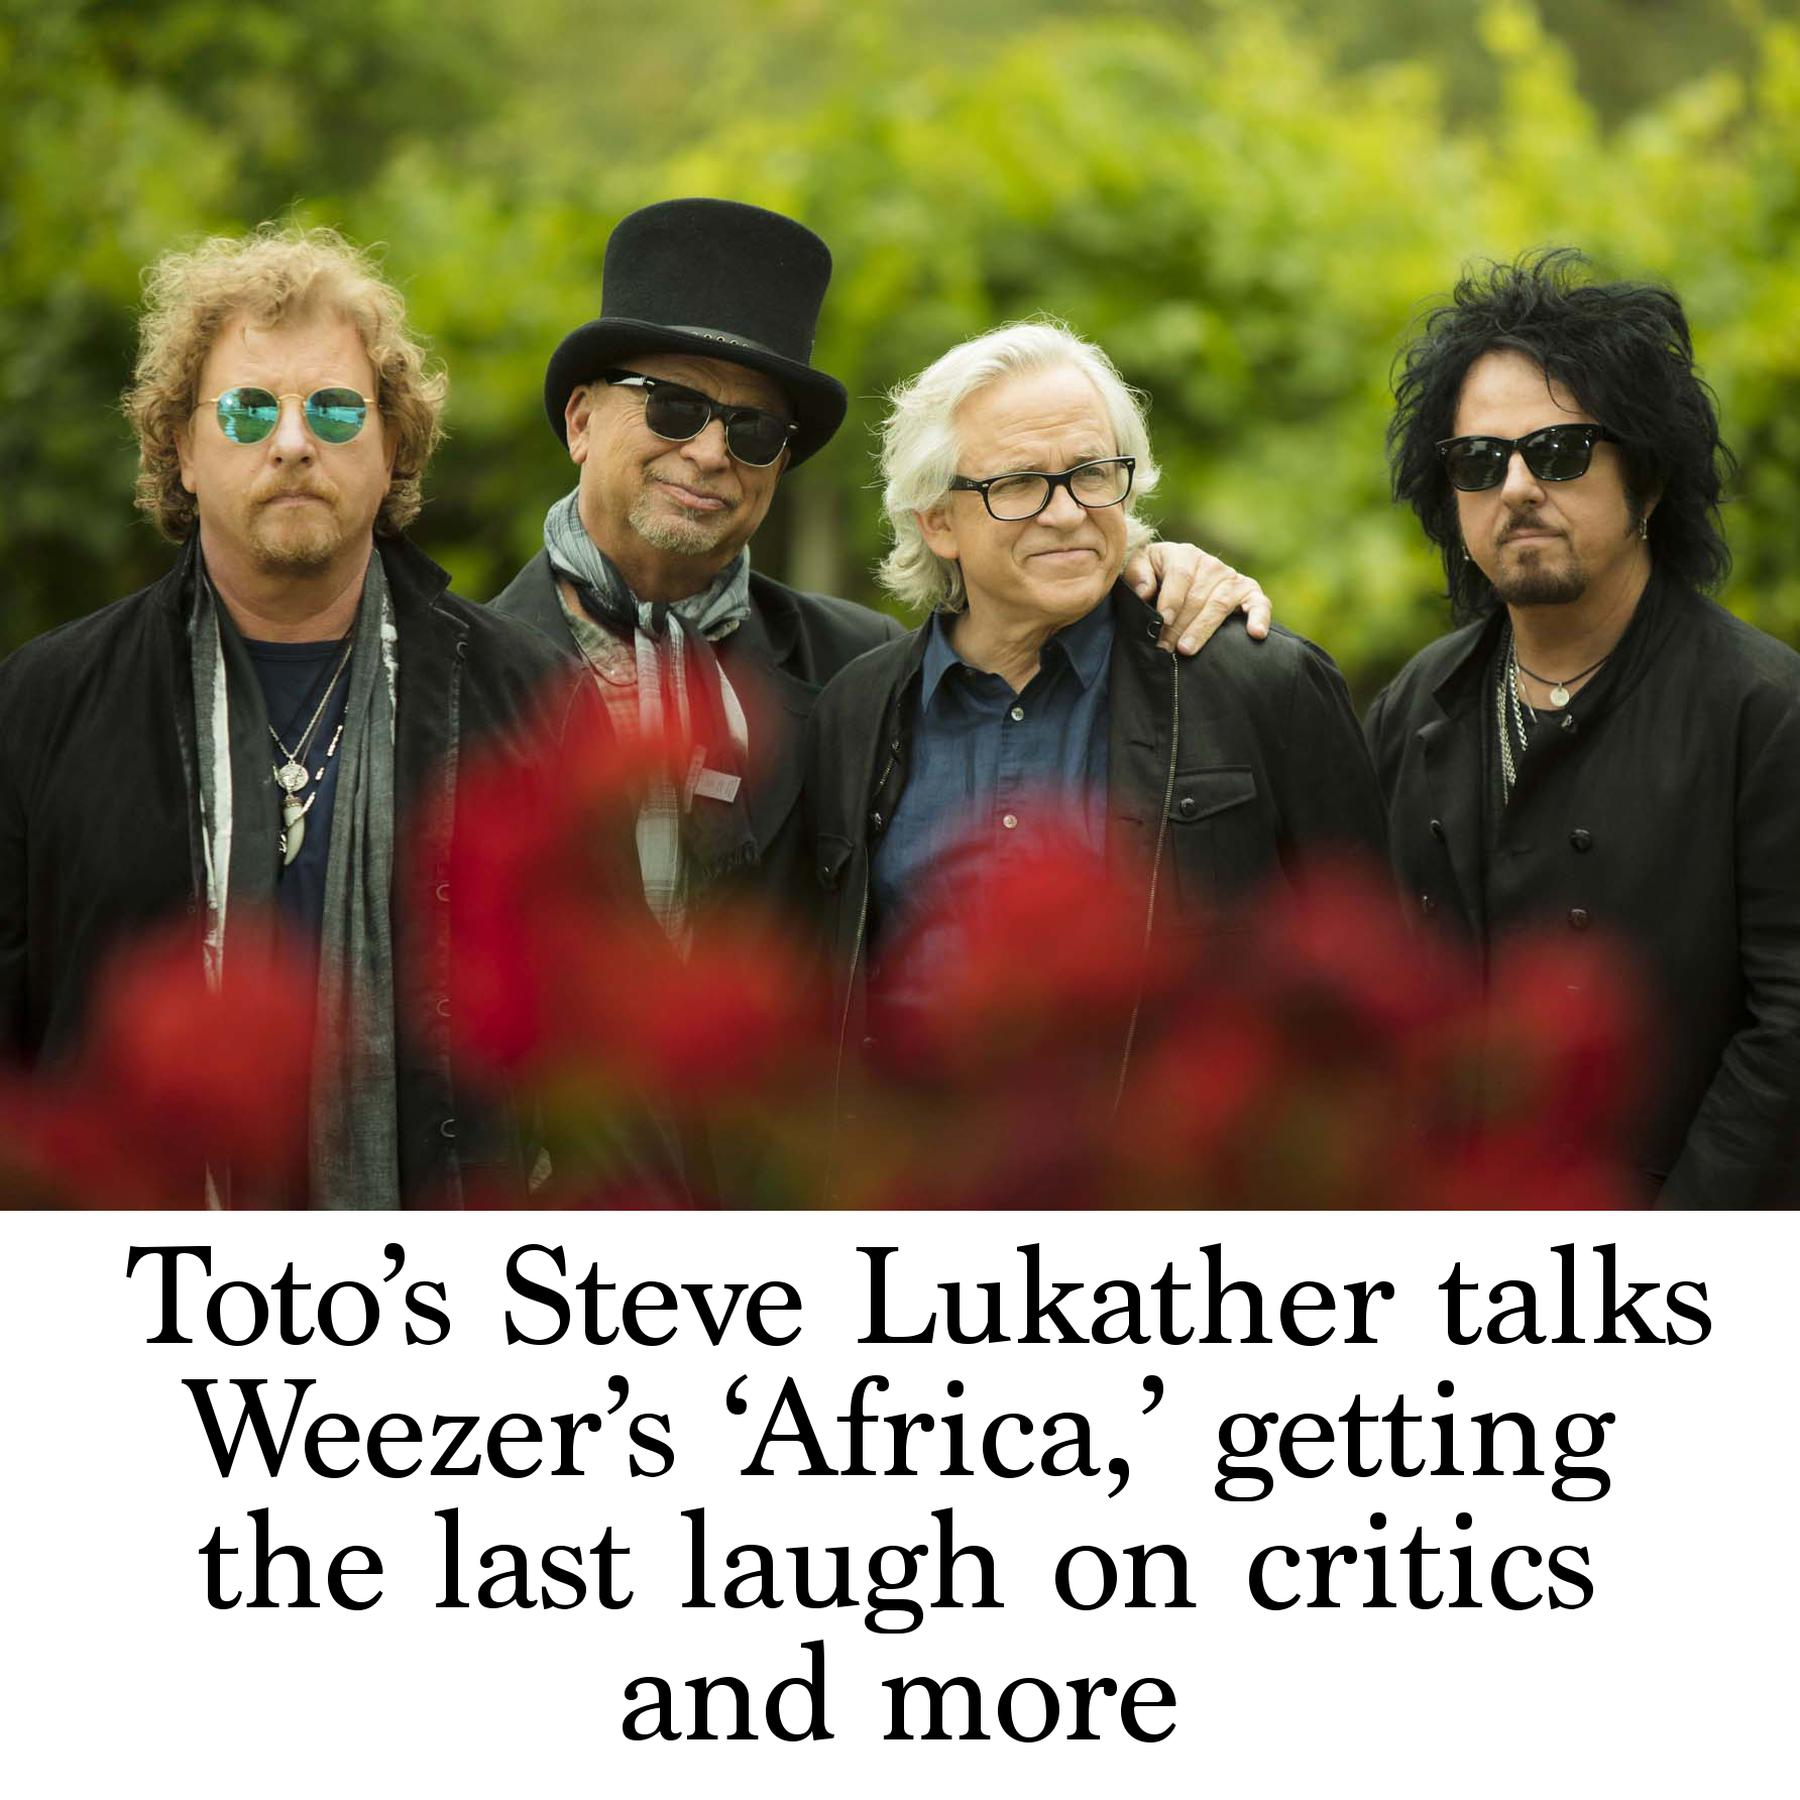 Toto's Steve Lukather talks Weezer's 'Africa,' getting the